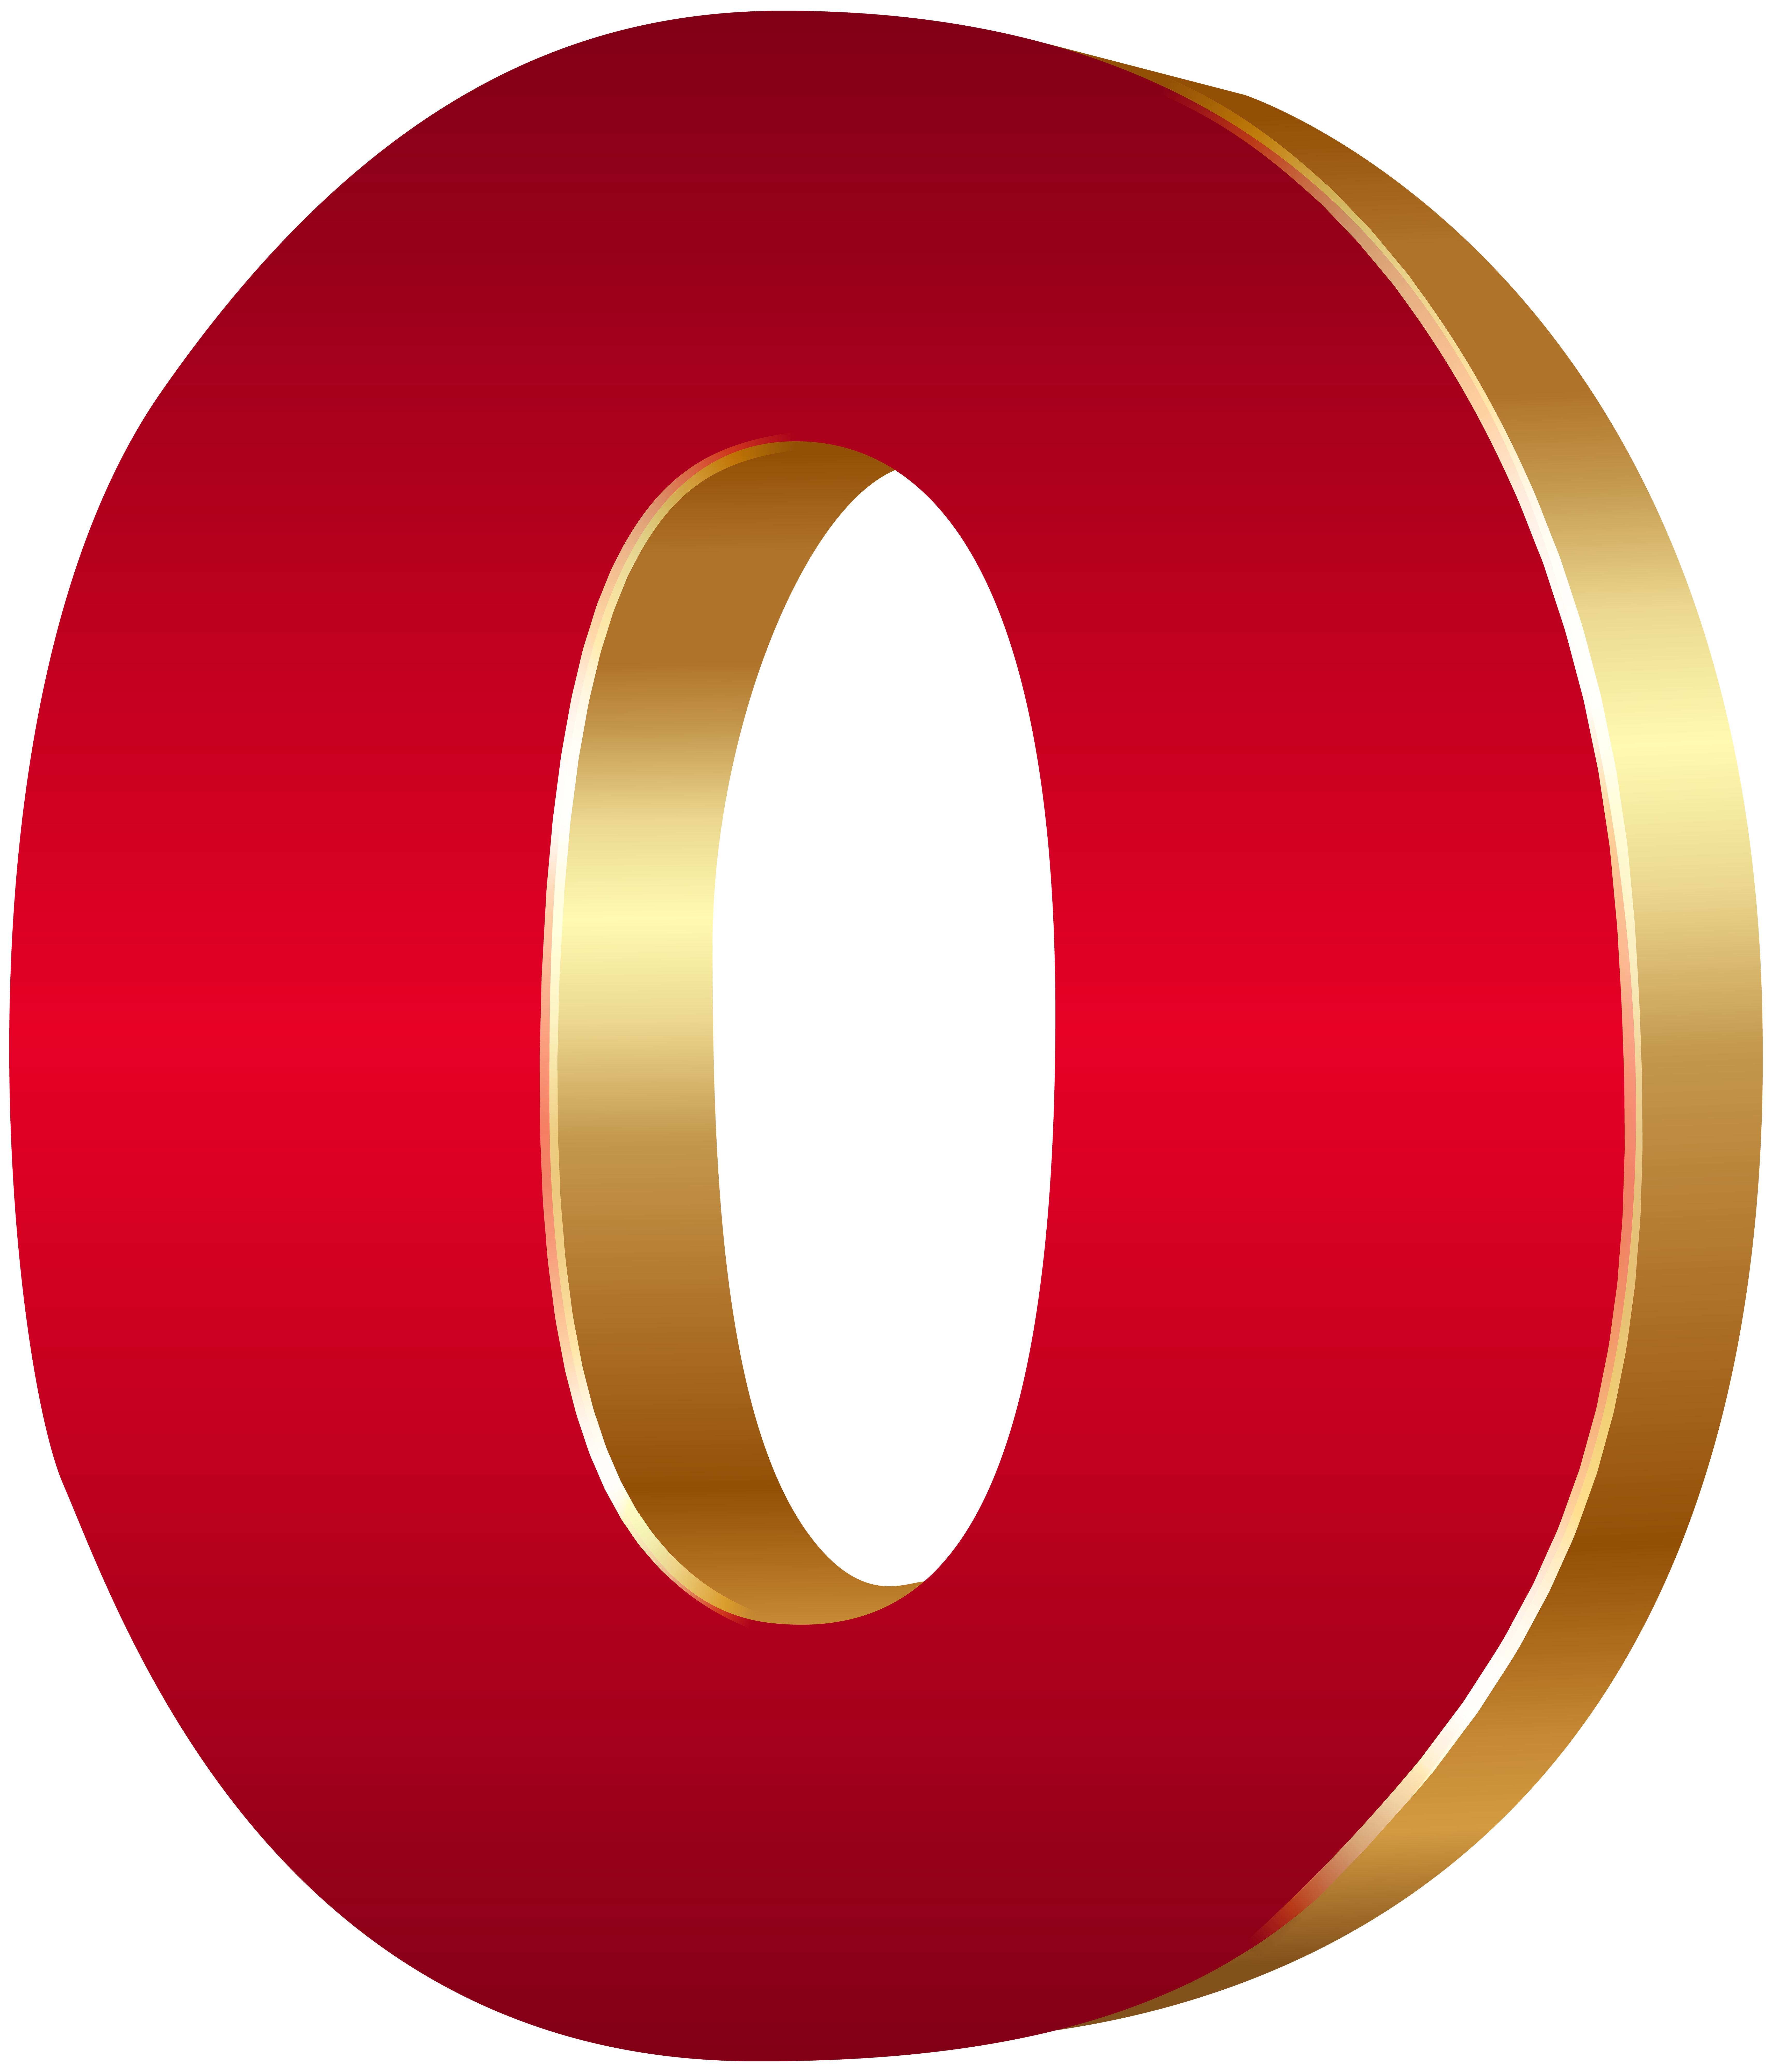 6840x8000 3d Number Zero Red Gold Png Clip Art Imageu200b Gallery Yopriceville